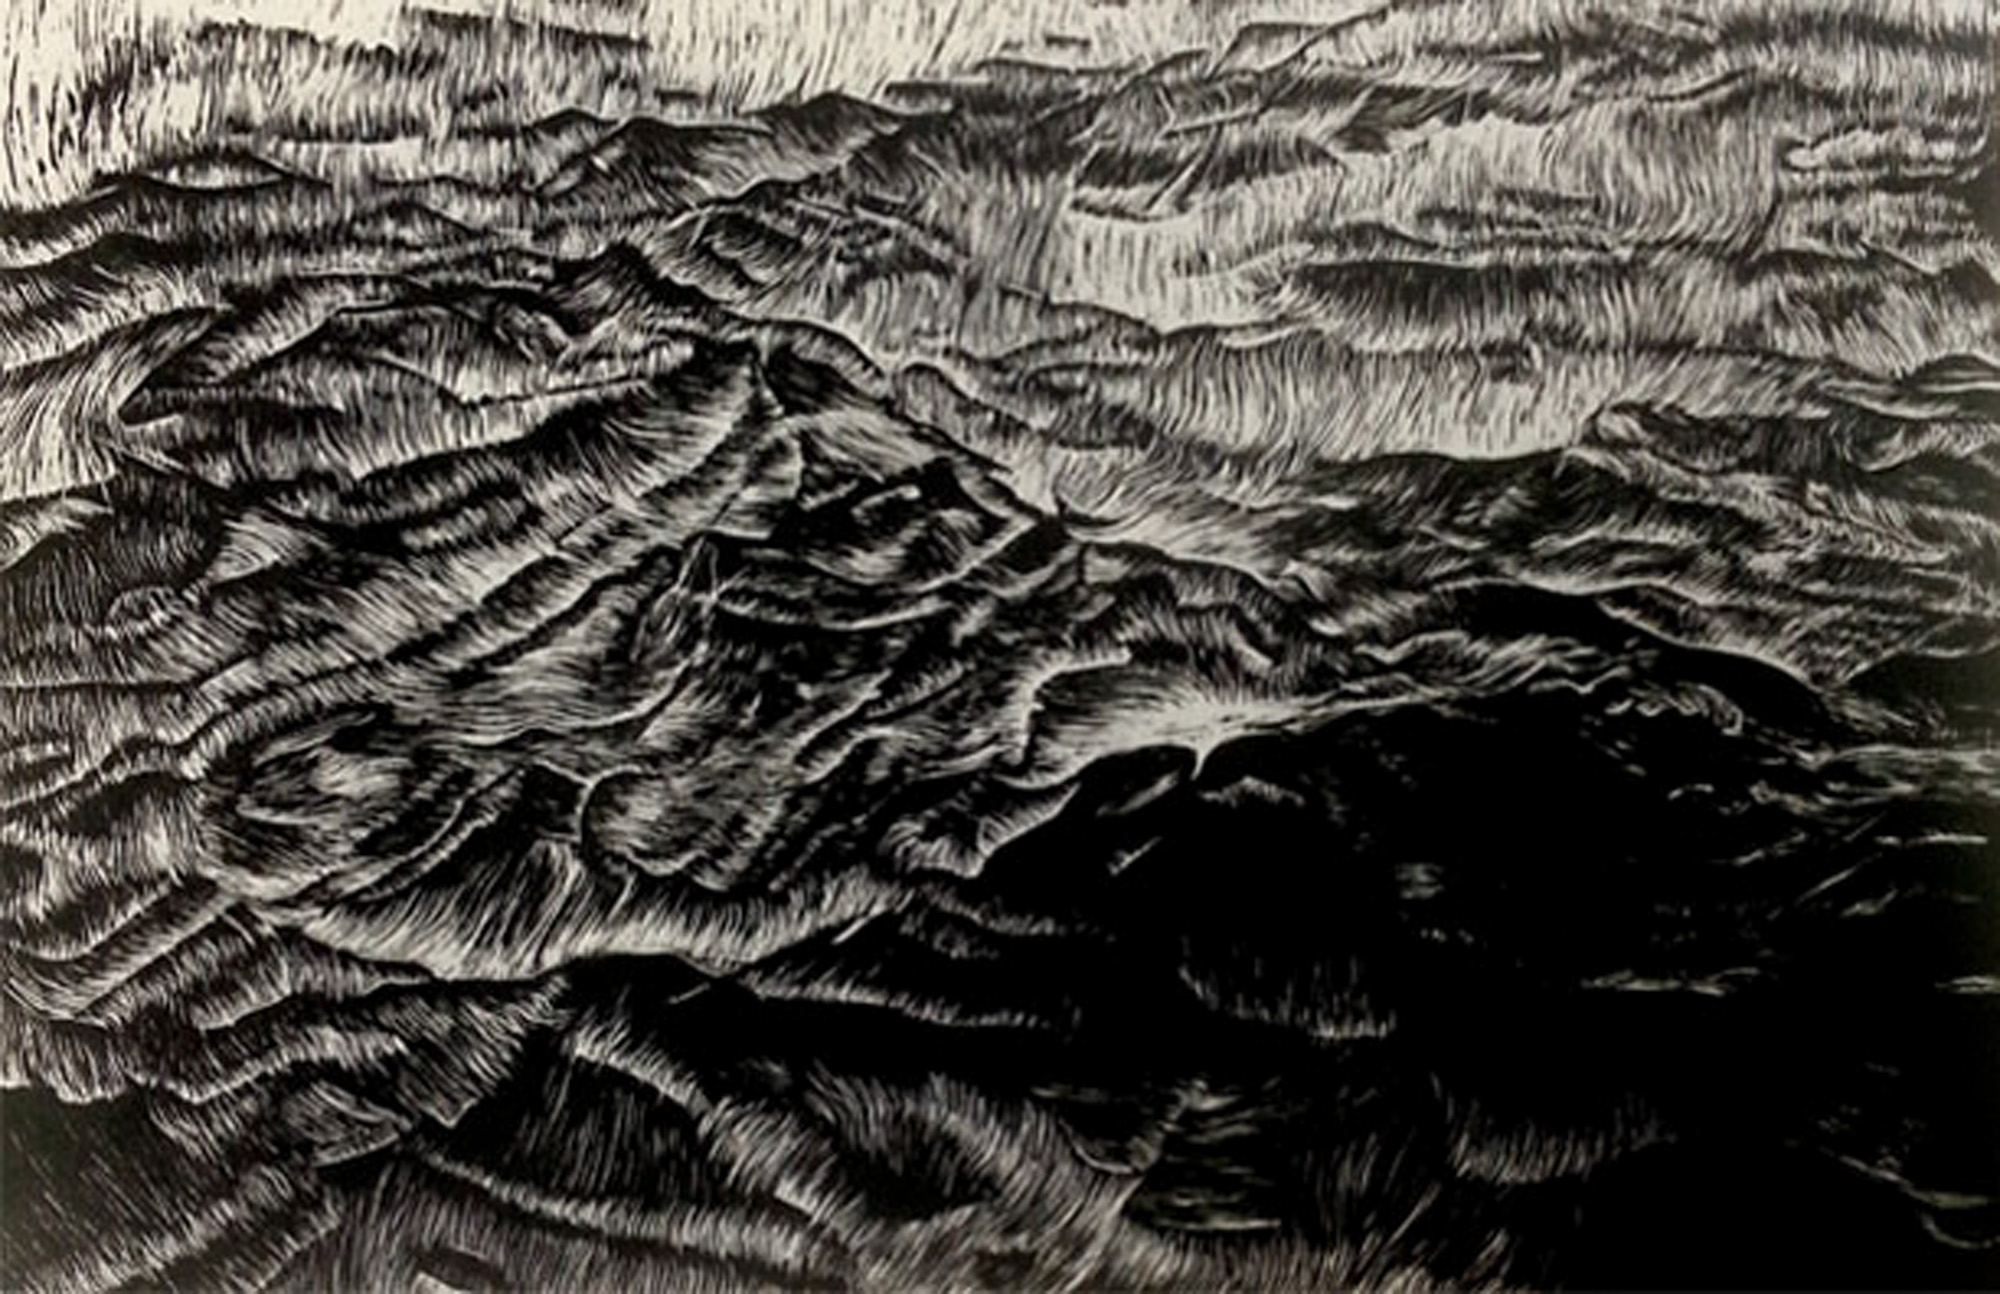 Cathleen Ficht Shifting, Wood Engraving, 4 x 6 inches